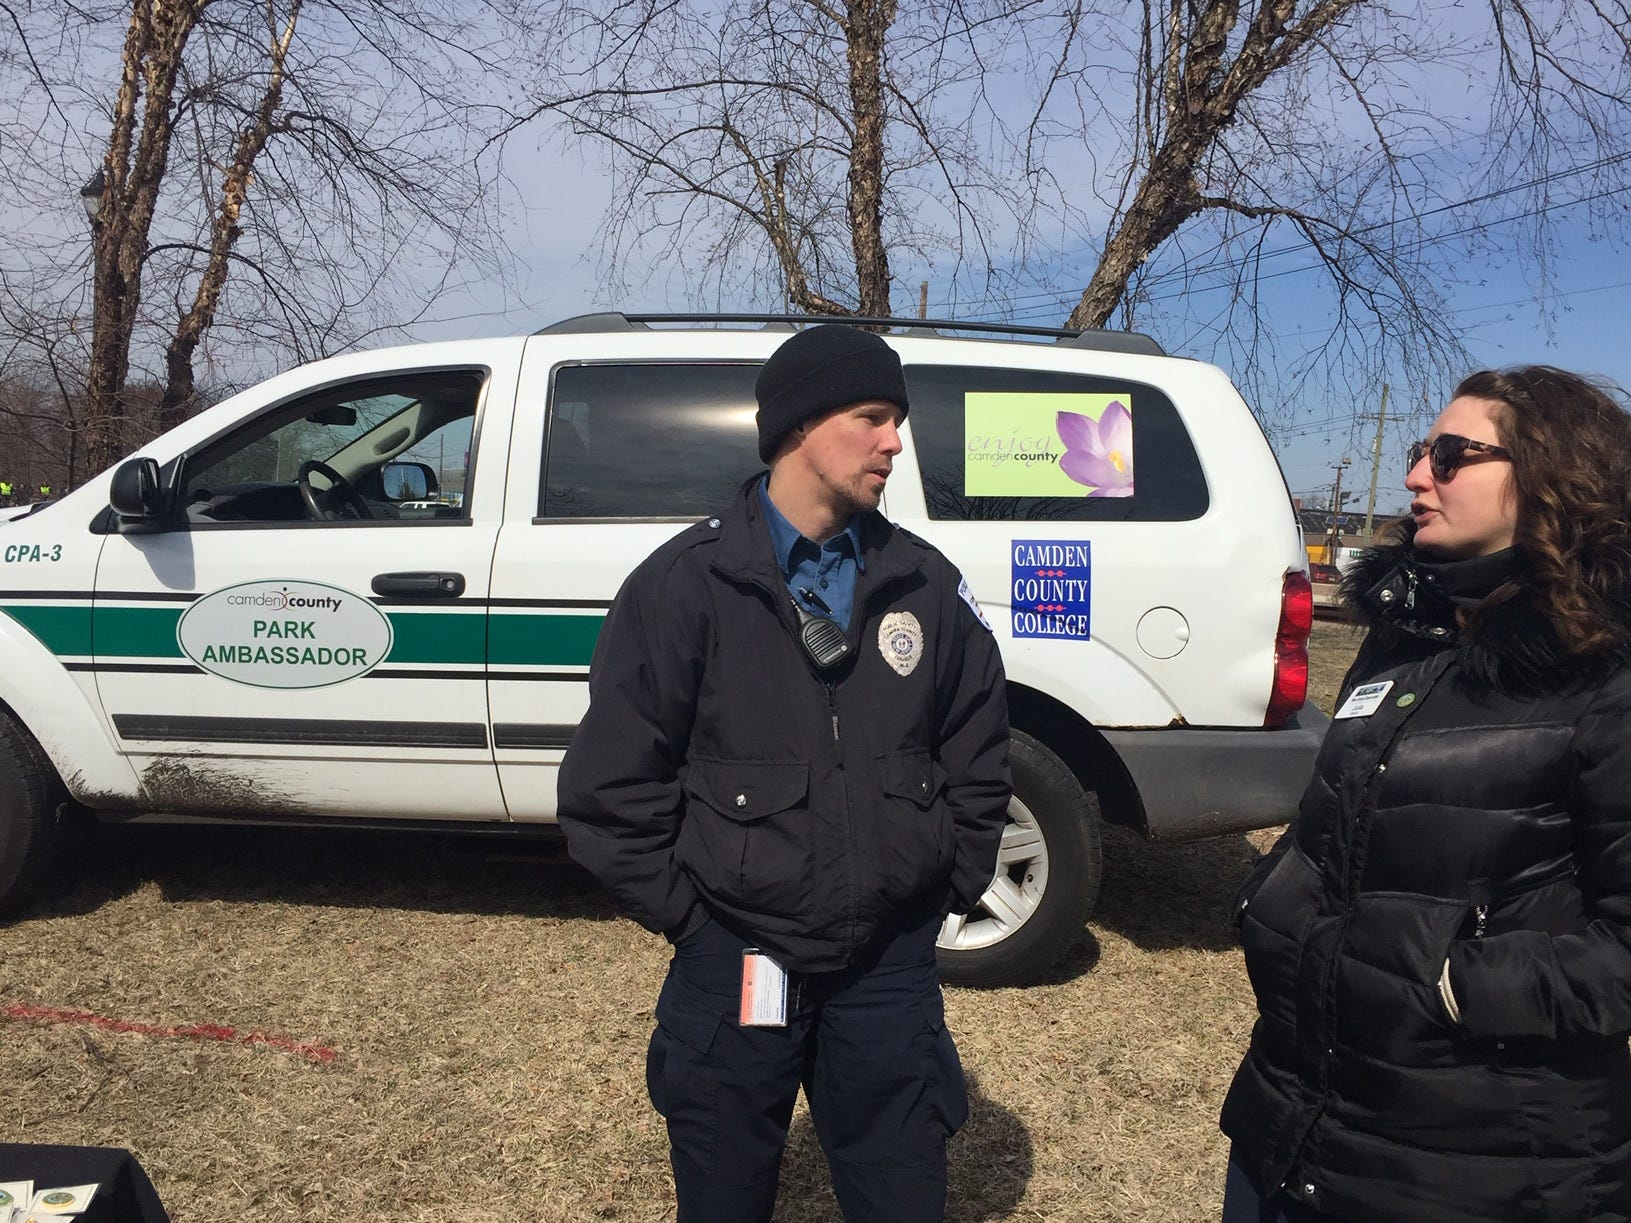 Security personnel called park ambassadors roam Gateway Park on opening day. Ambassador Matt Crandall        talks with Julia  Raskin of the New Jersey Conservation Foundation, which  managed the park for Camden County and the county  municipal utilities authority